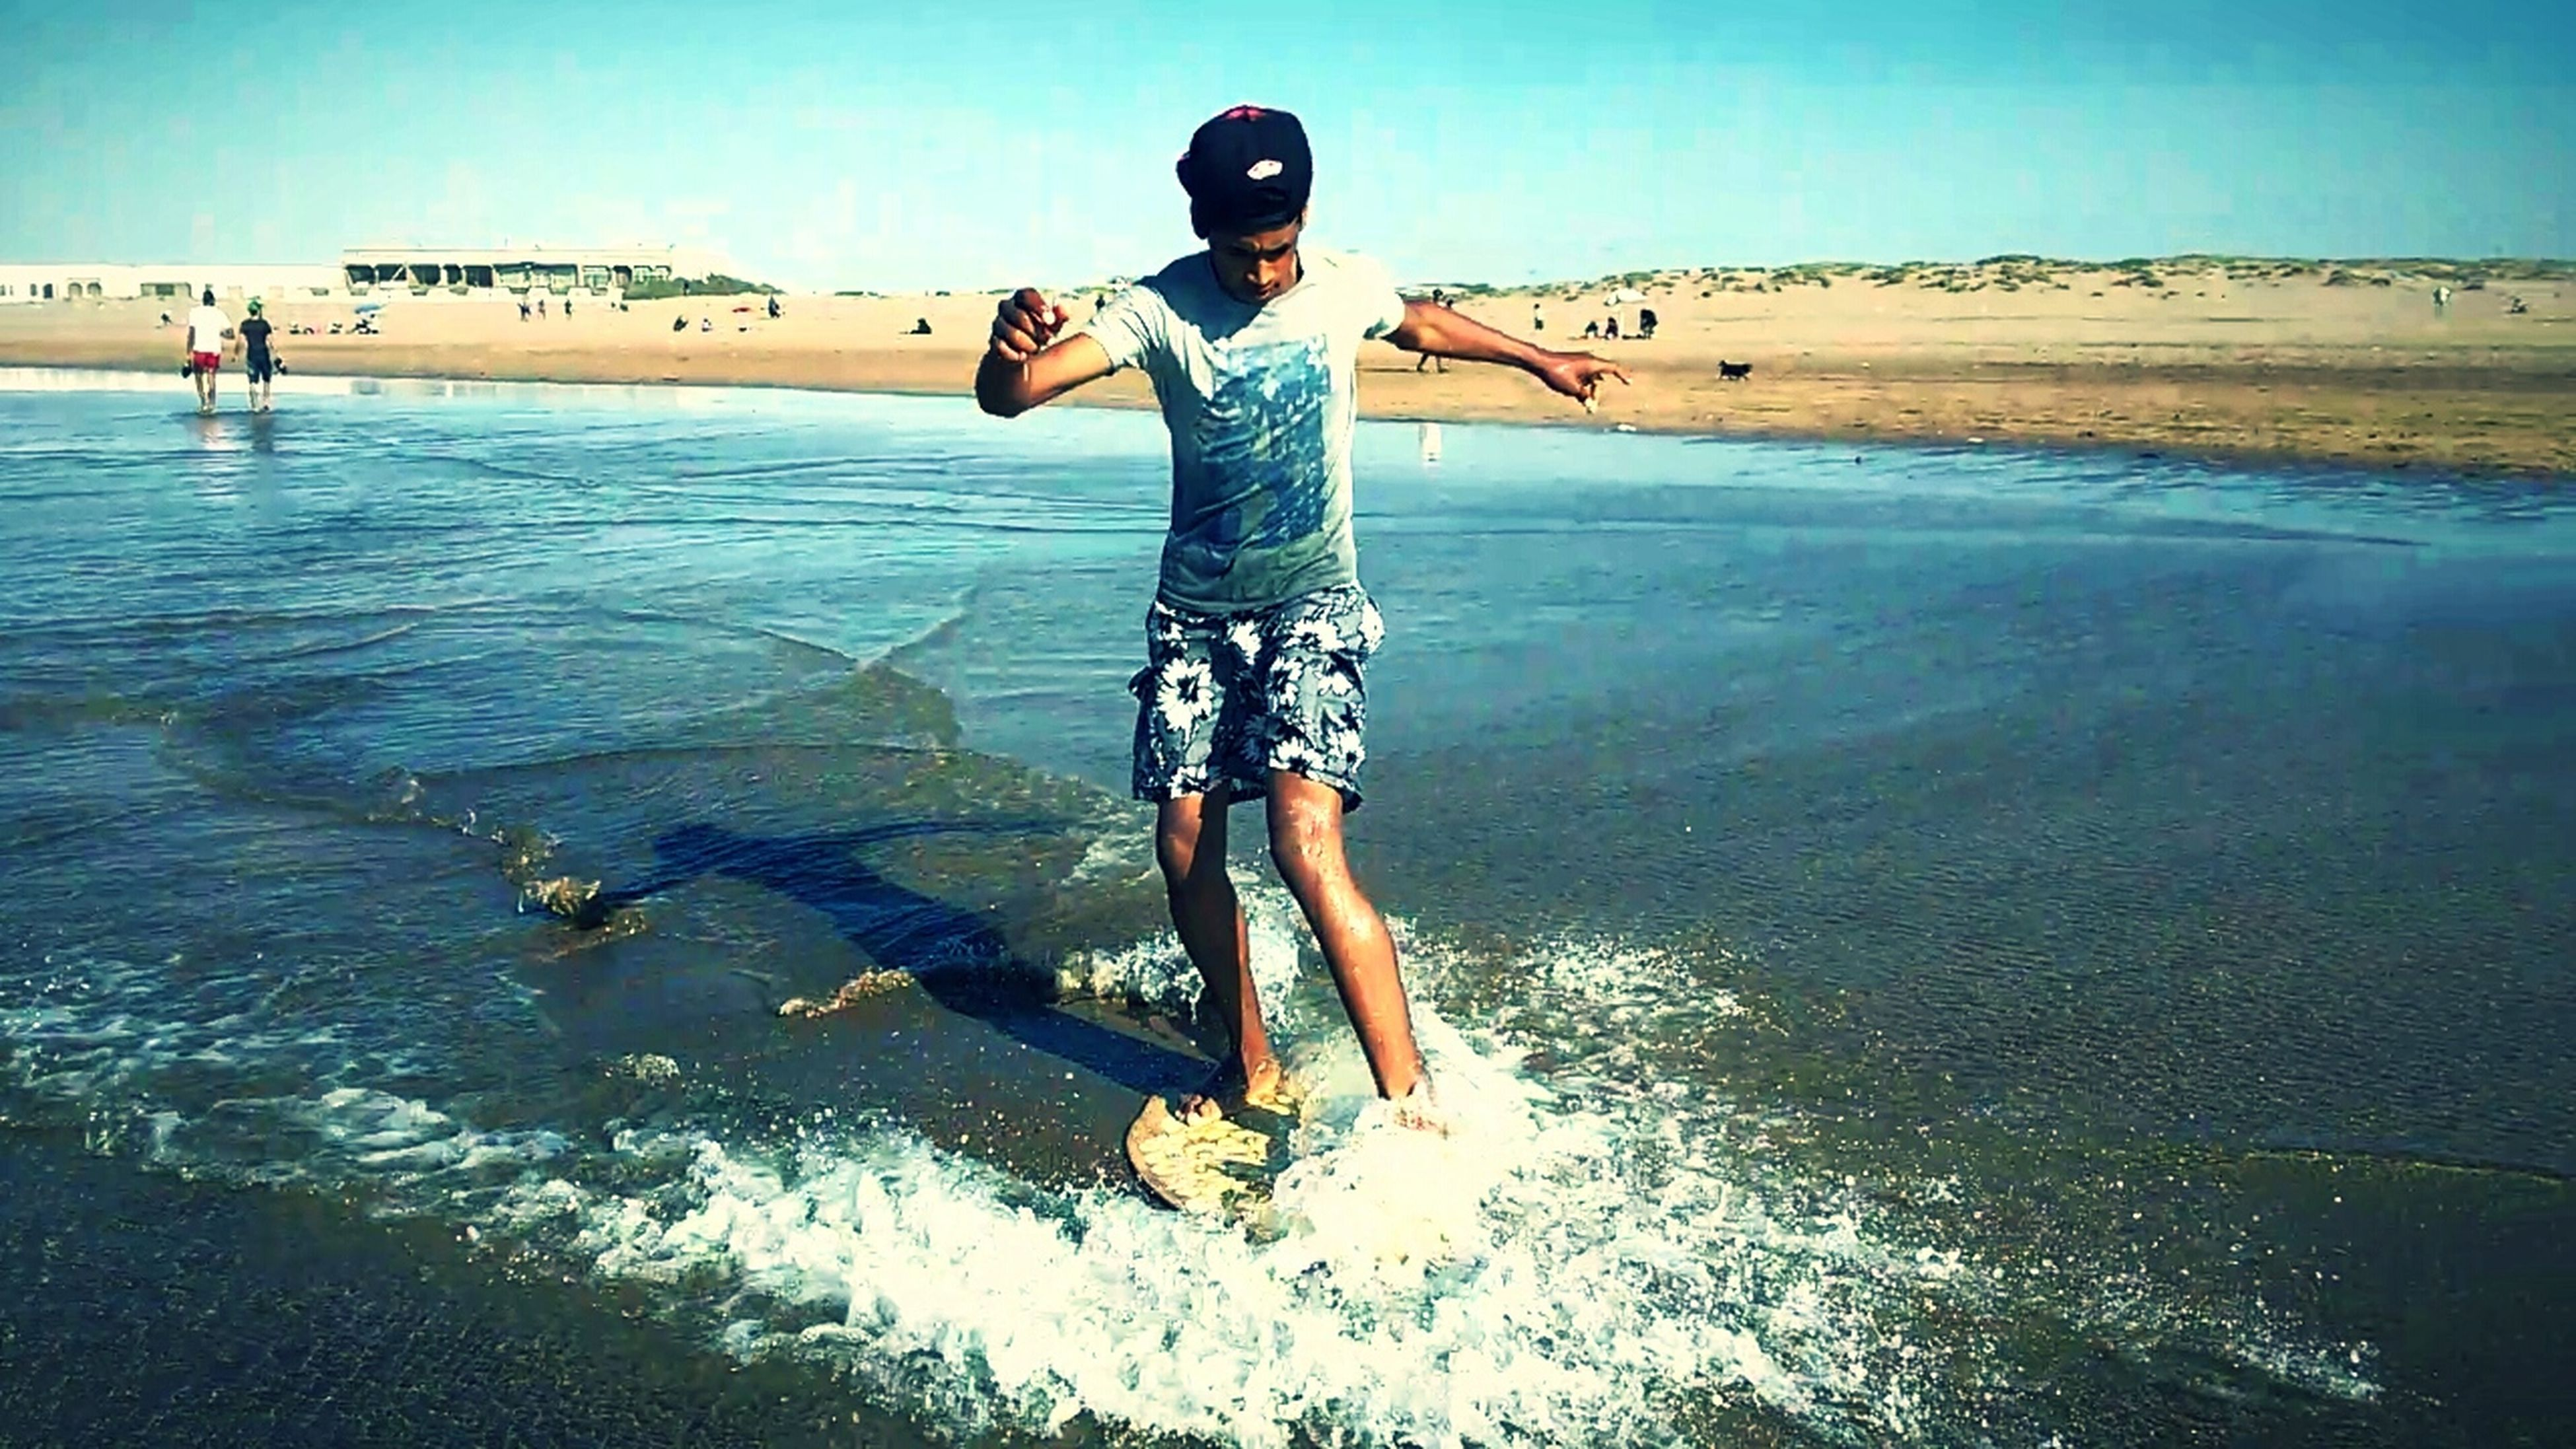 water, full length, lifestyles, leisure activity, front view, casual clothing, portrait, vacations, fun, enjoyment, arms outstretched, sky, jumping, day, nature, outdoors, tranquility